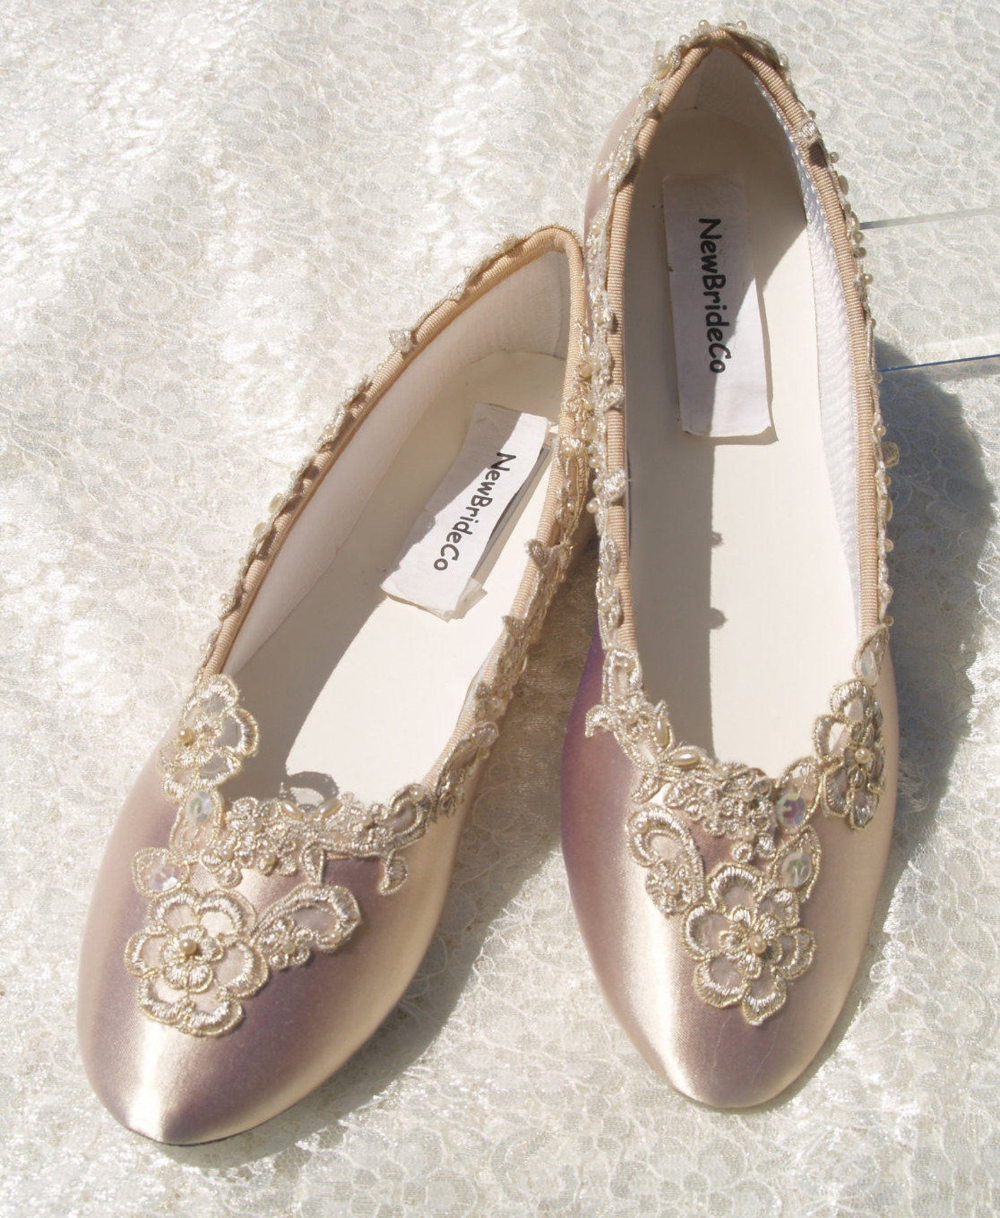 Champagne Wedding Flats Bridal Shoe elegantly gold trimmed